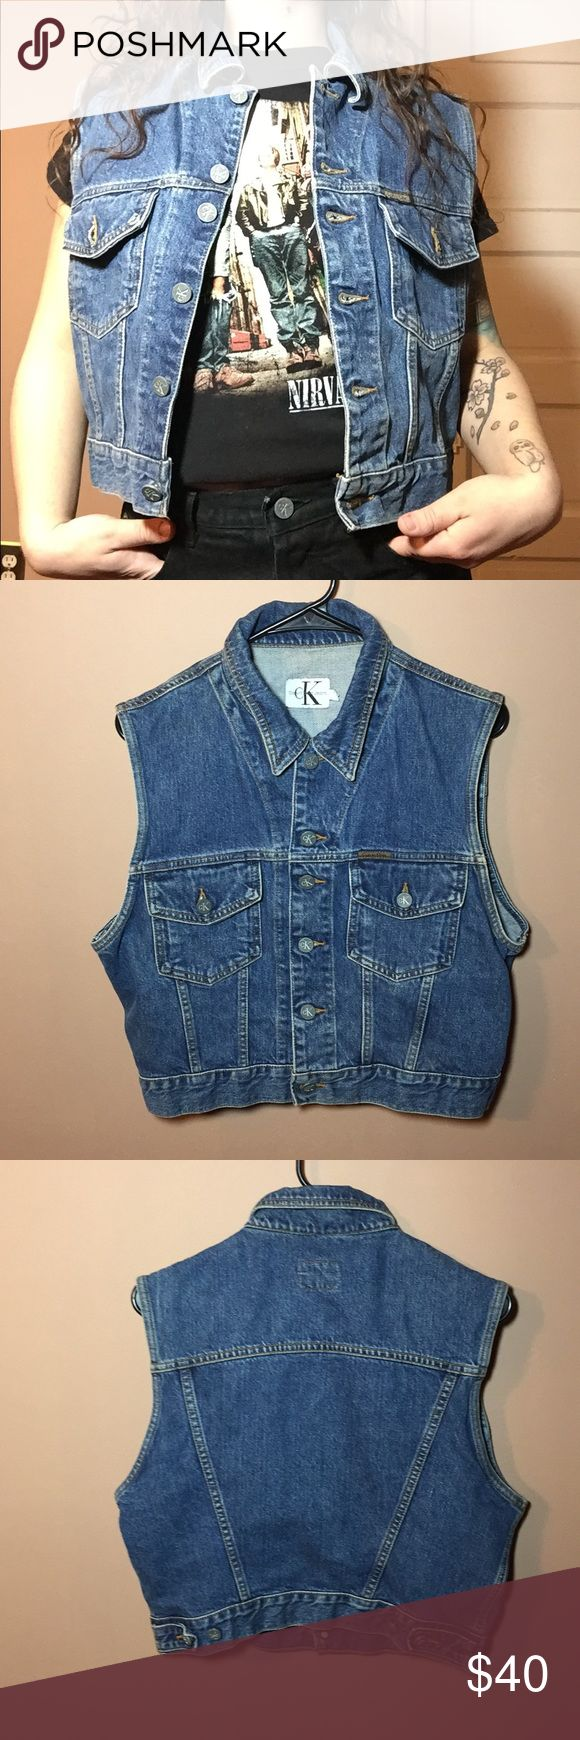 """90s Vintage Calvin Klein Denim Vest 🔹Amazing 90s Vintage Denim Calvin Klein Denim Vest. Would look great layered with a hoodie, or worn with a band tee. Great pre owned condition. 🔹Size L 🔹Compare your own measurements with the following: 🔹Length: 19"""" 🔹Bust: 40"""" 🔹Smoke free home- I do however have cats, but I try my best to ensure a clean product! Calvin Klein Jackets & Coats Vests"""